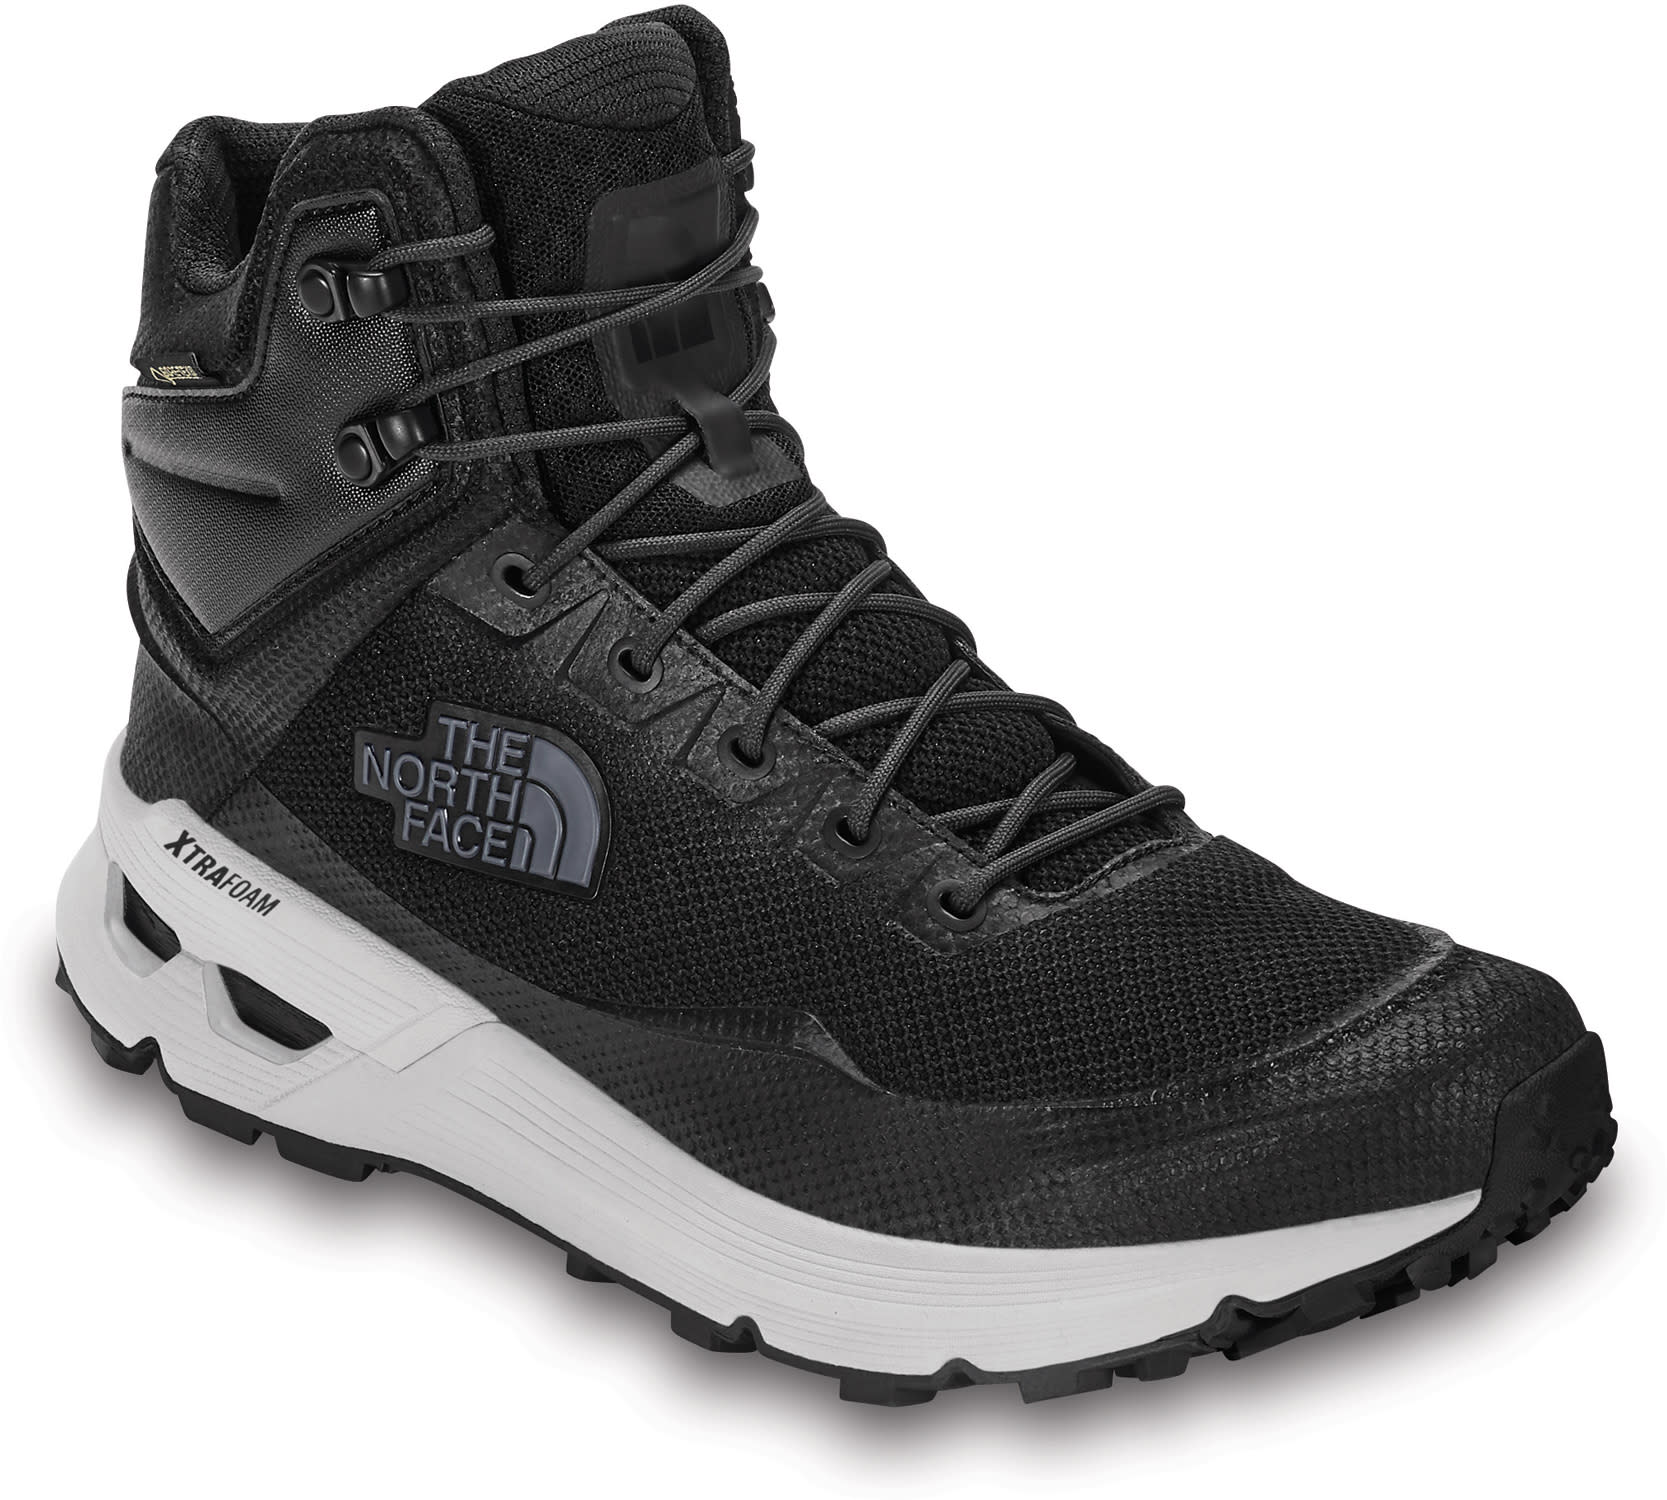 The North Face Safien Mid GTX Hiking Boots